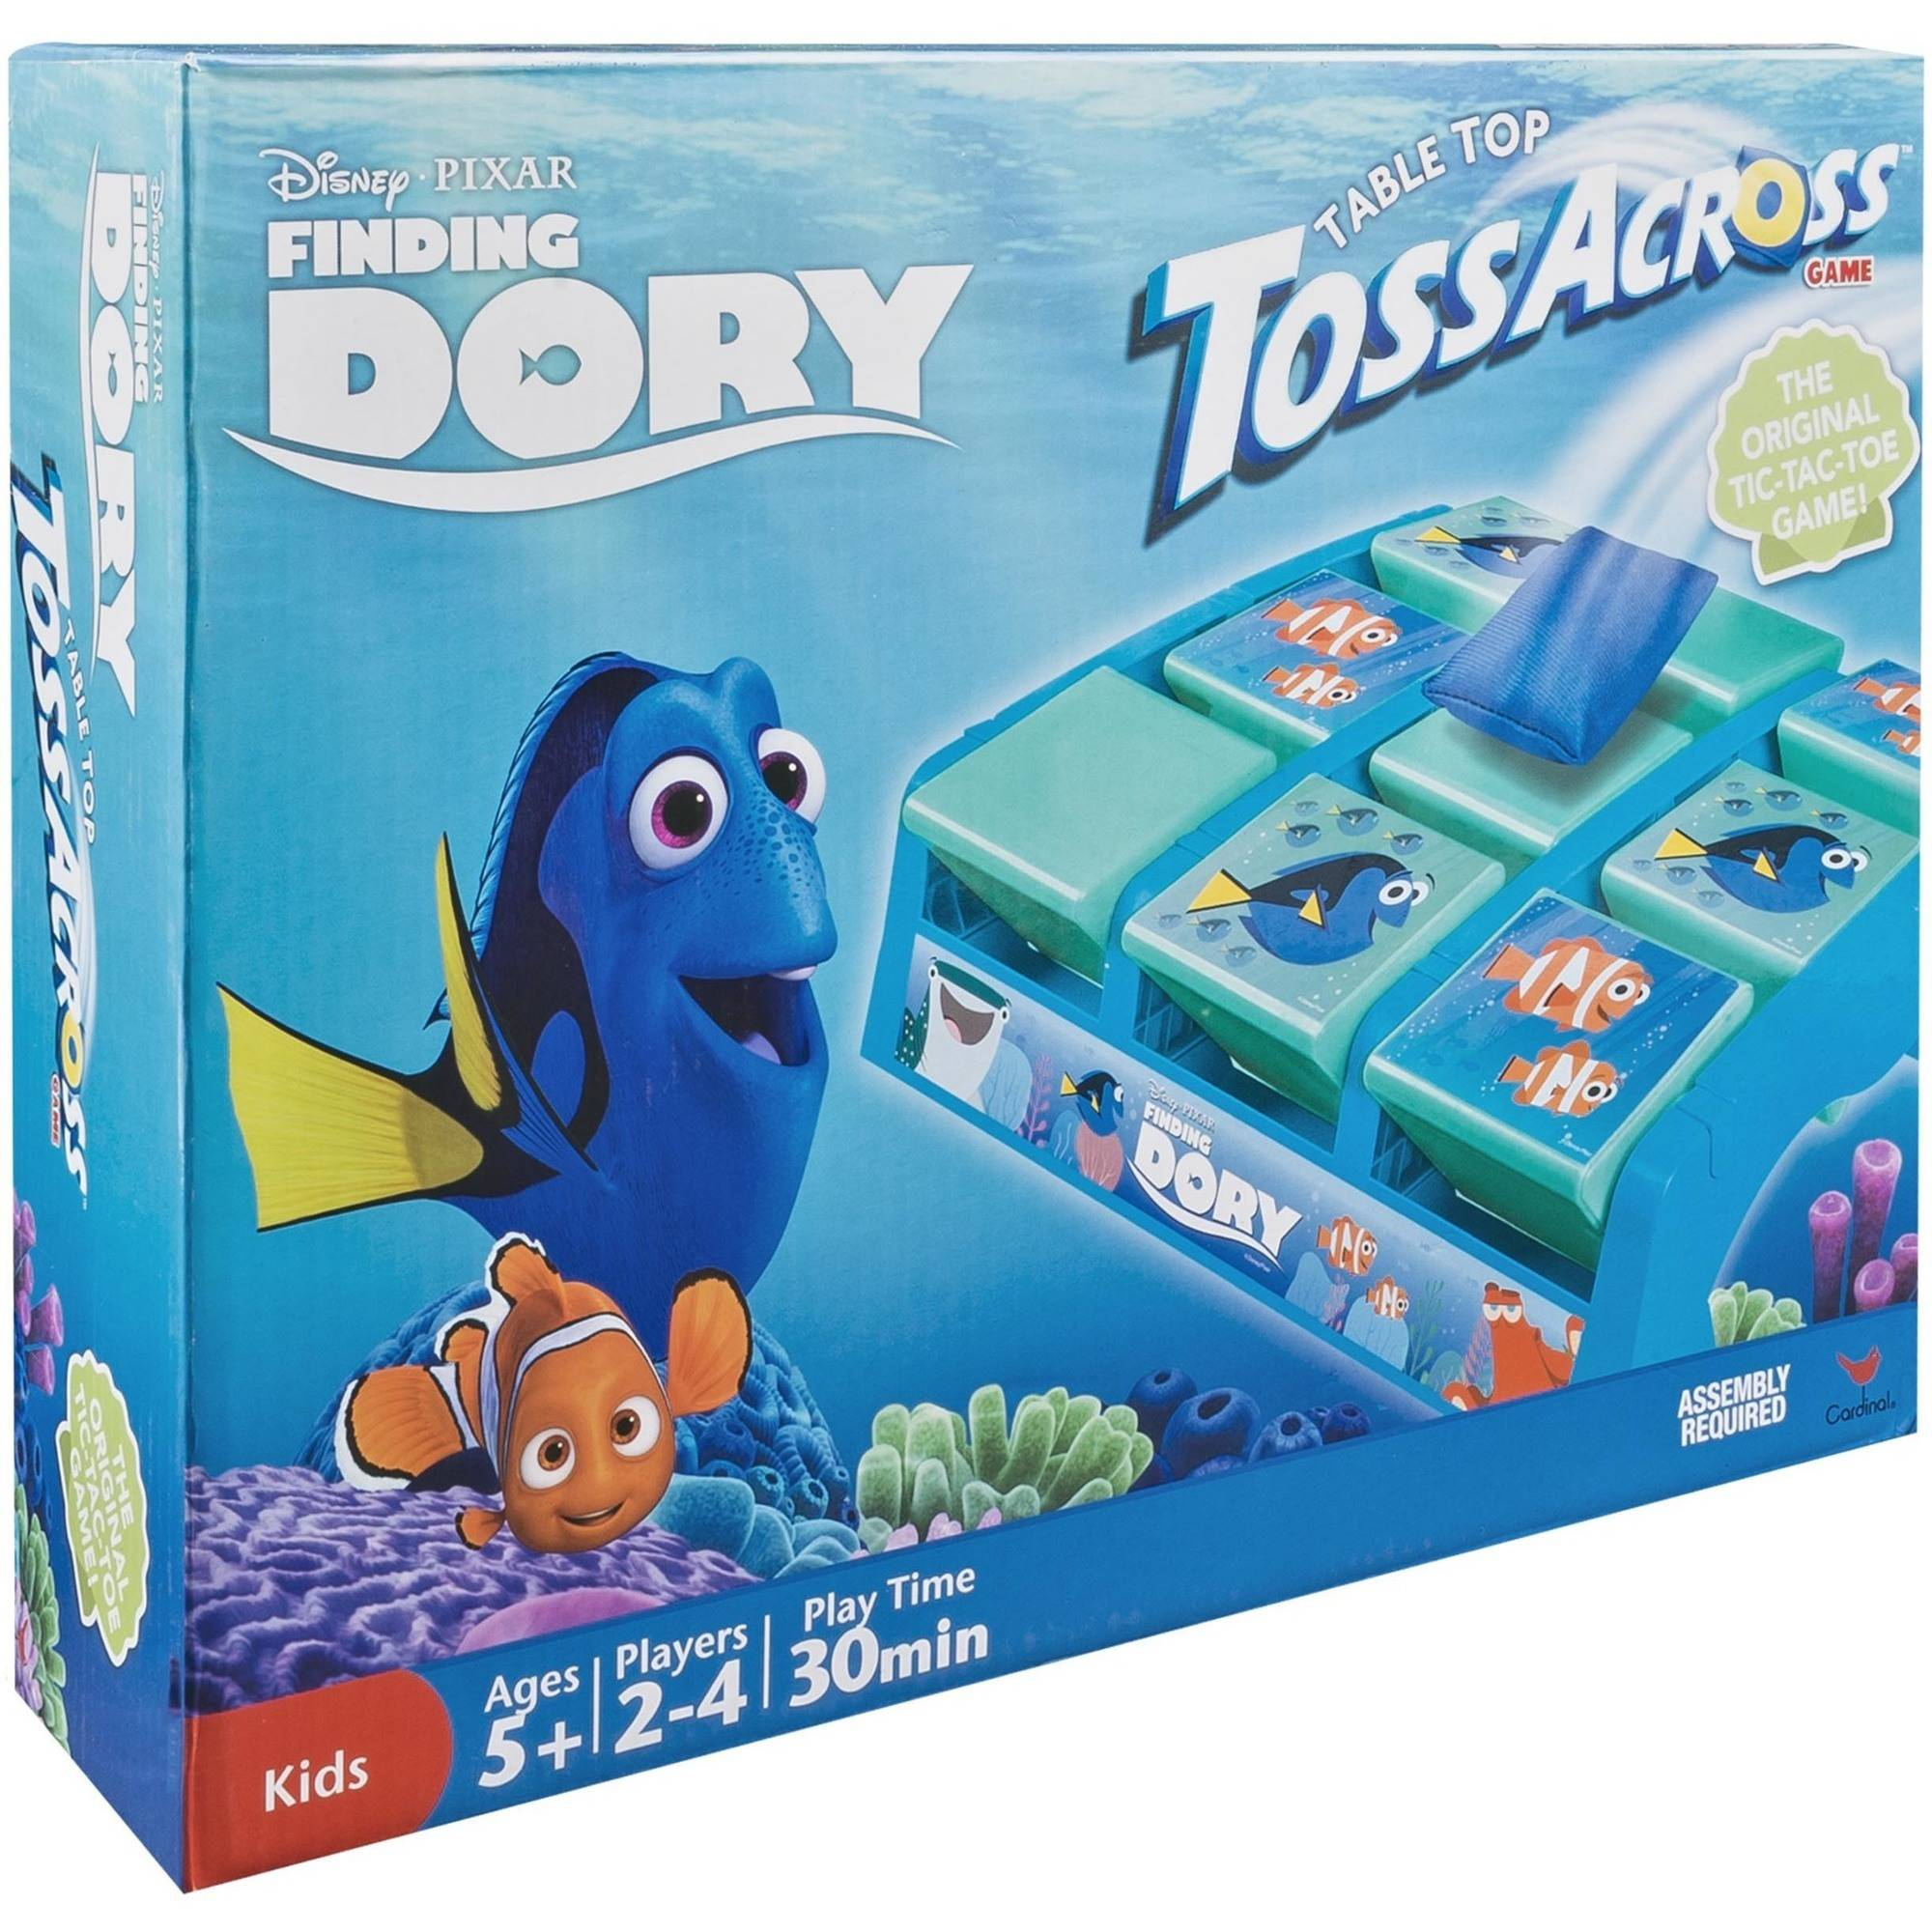 Finding Dory Table Top Toss Across Game